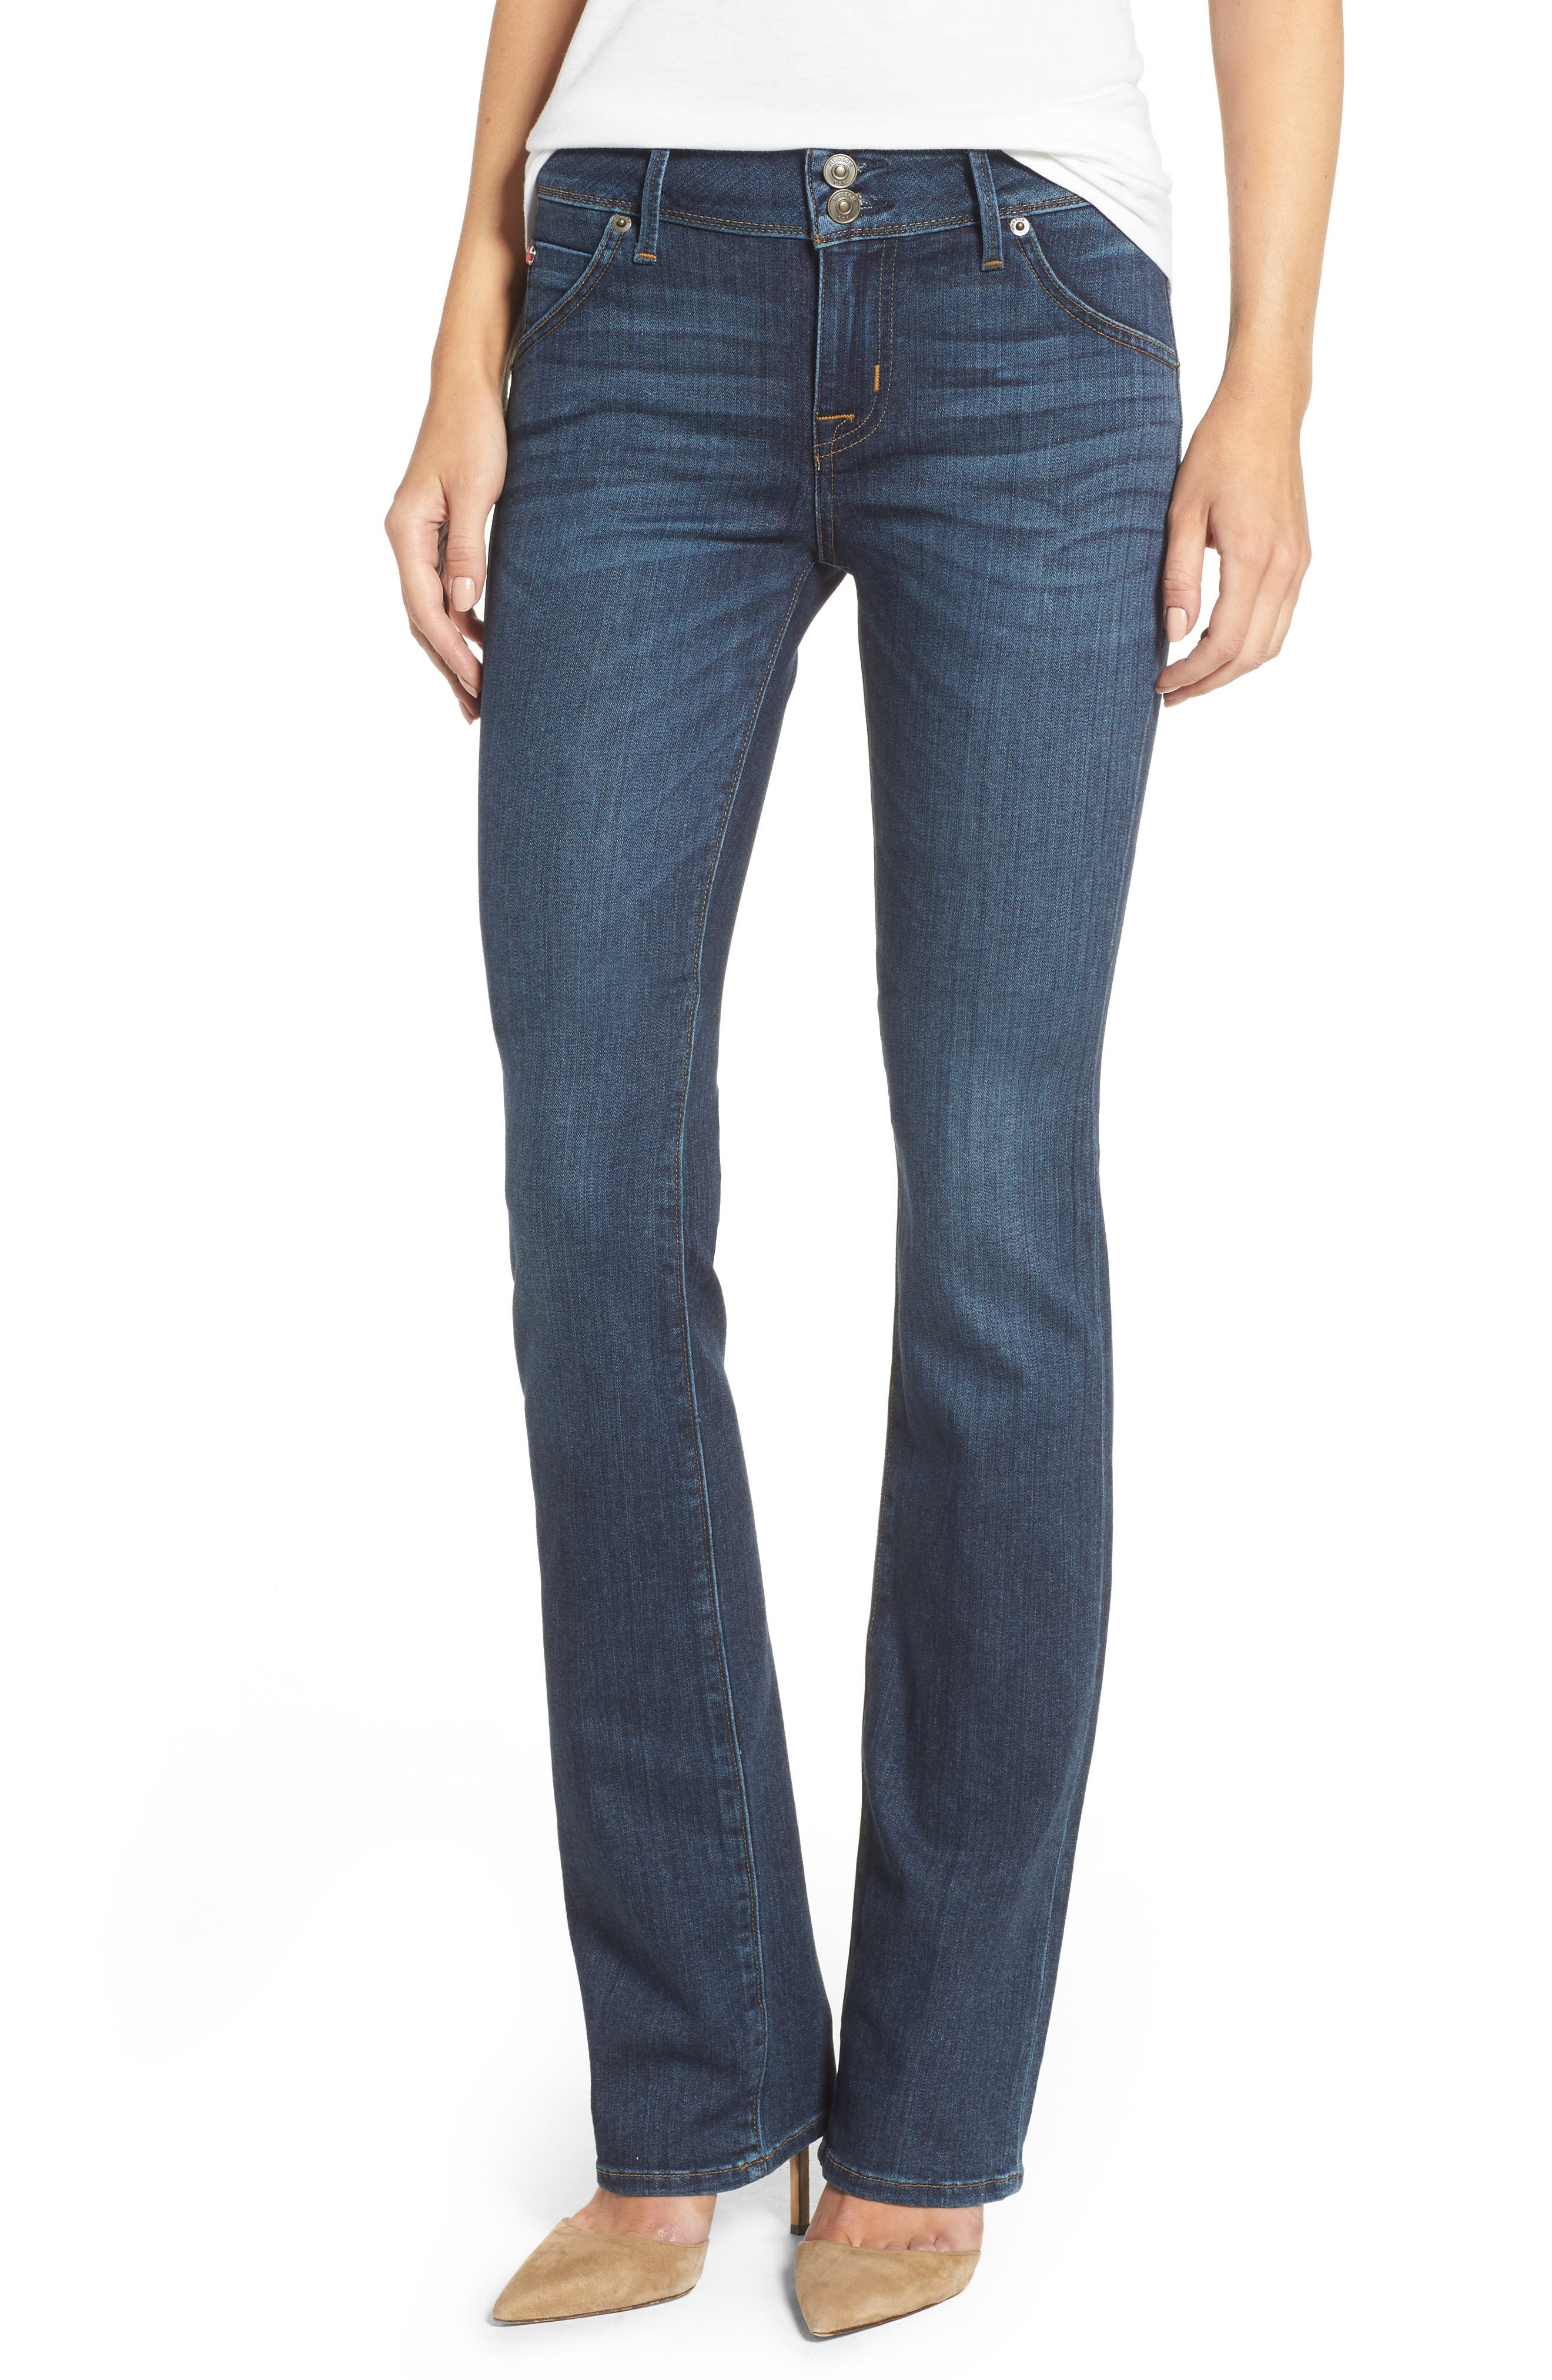 'Beth' Baby Bootcut Jeans,                             Main thumbnail 1, color,                             422